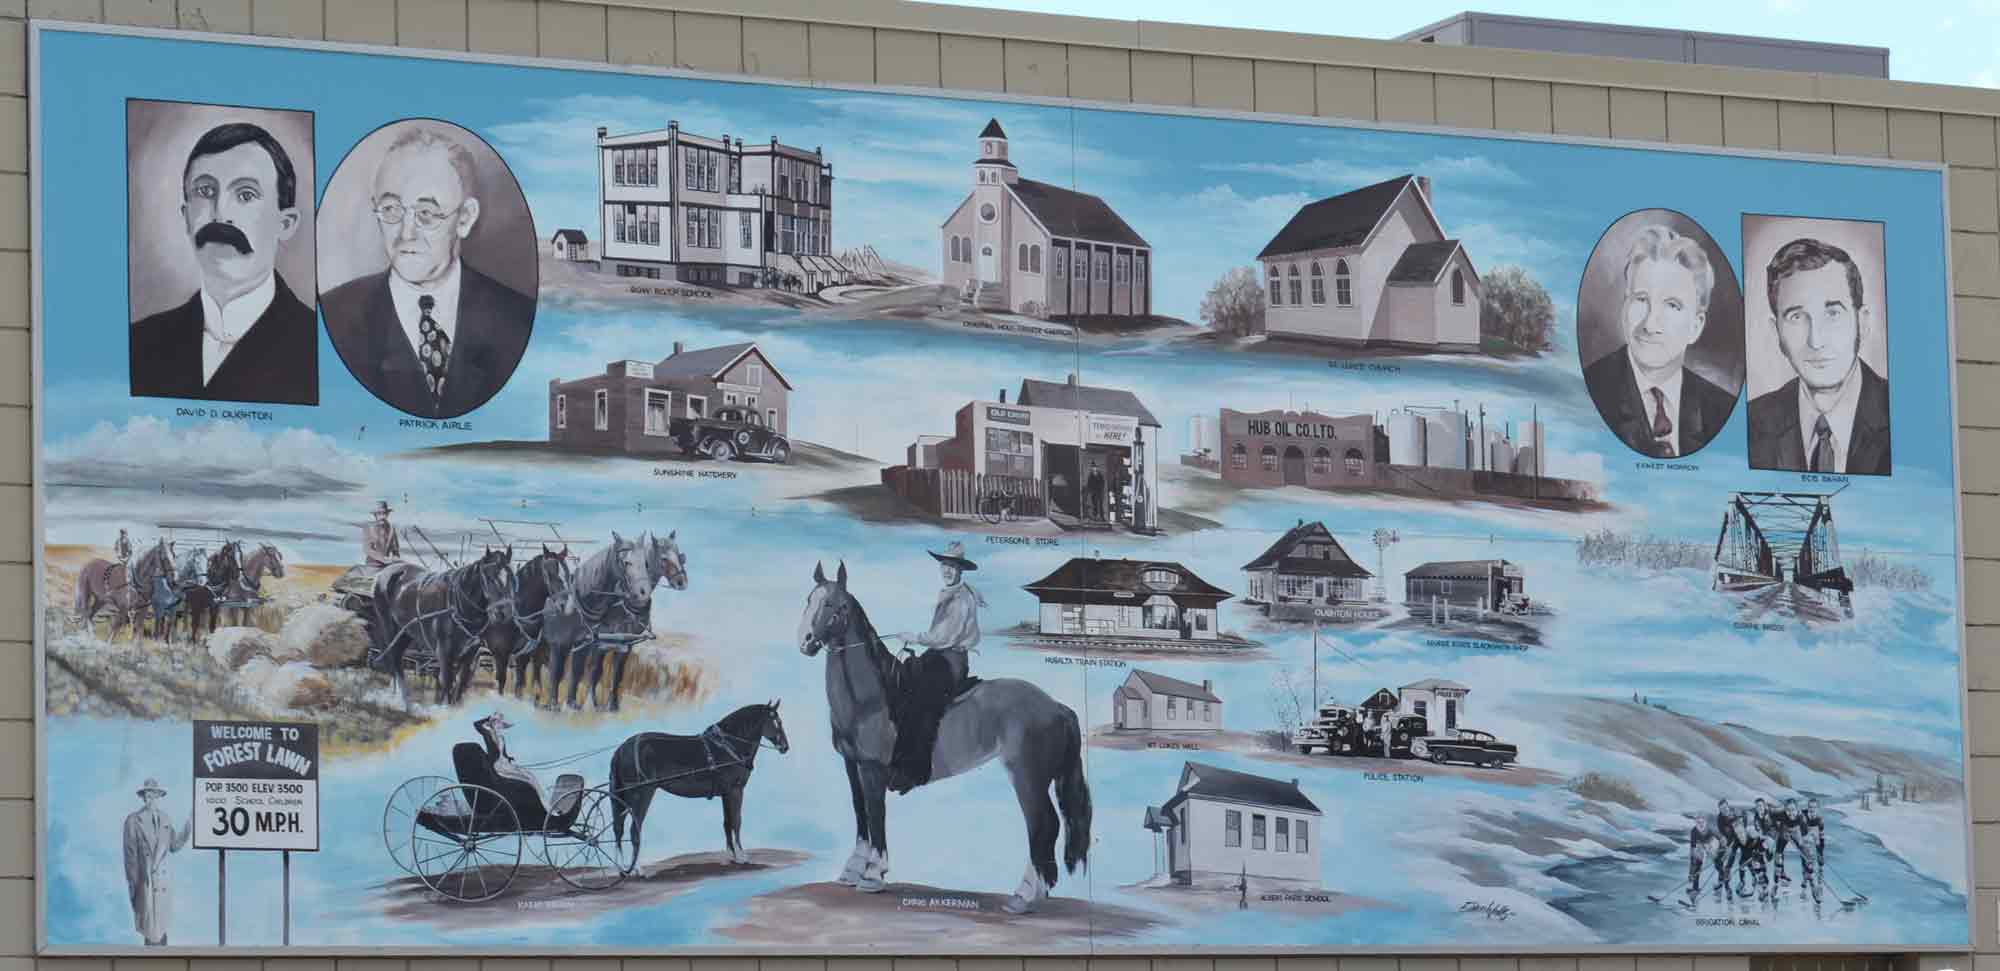 A. Town of Forest Lawn Mural